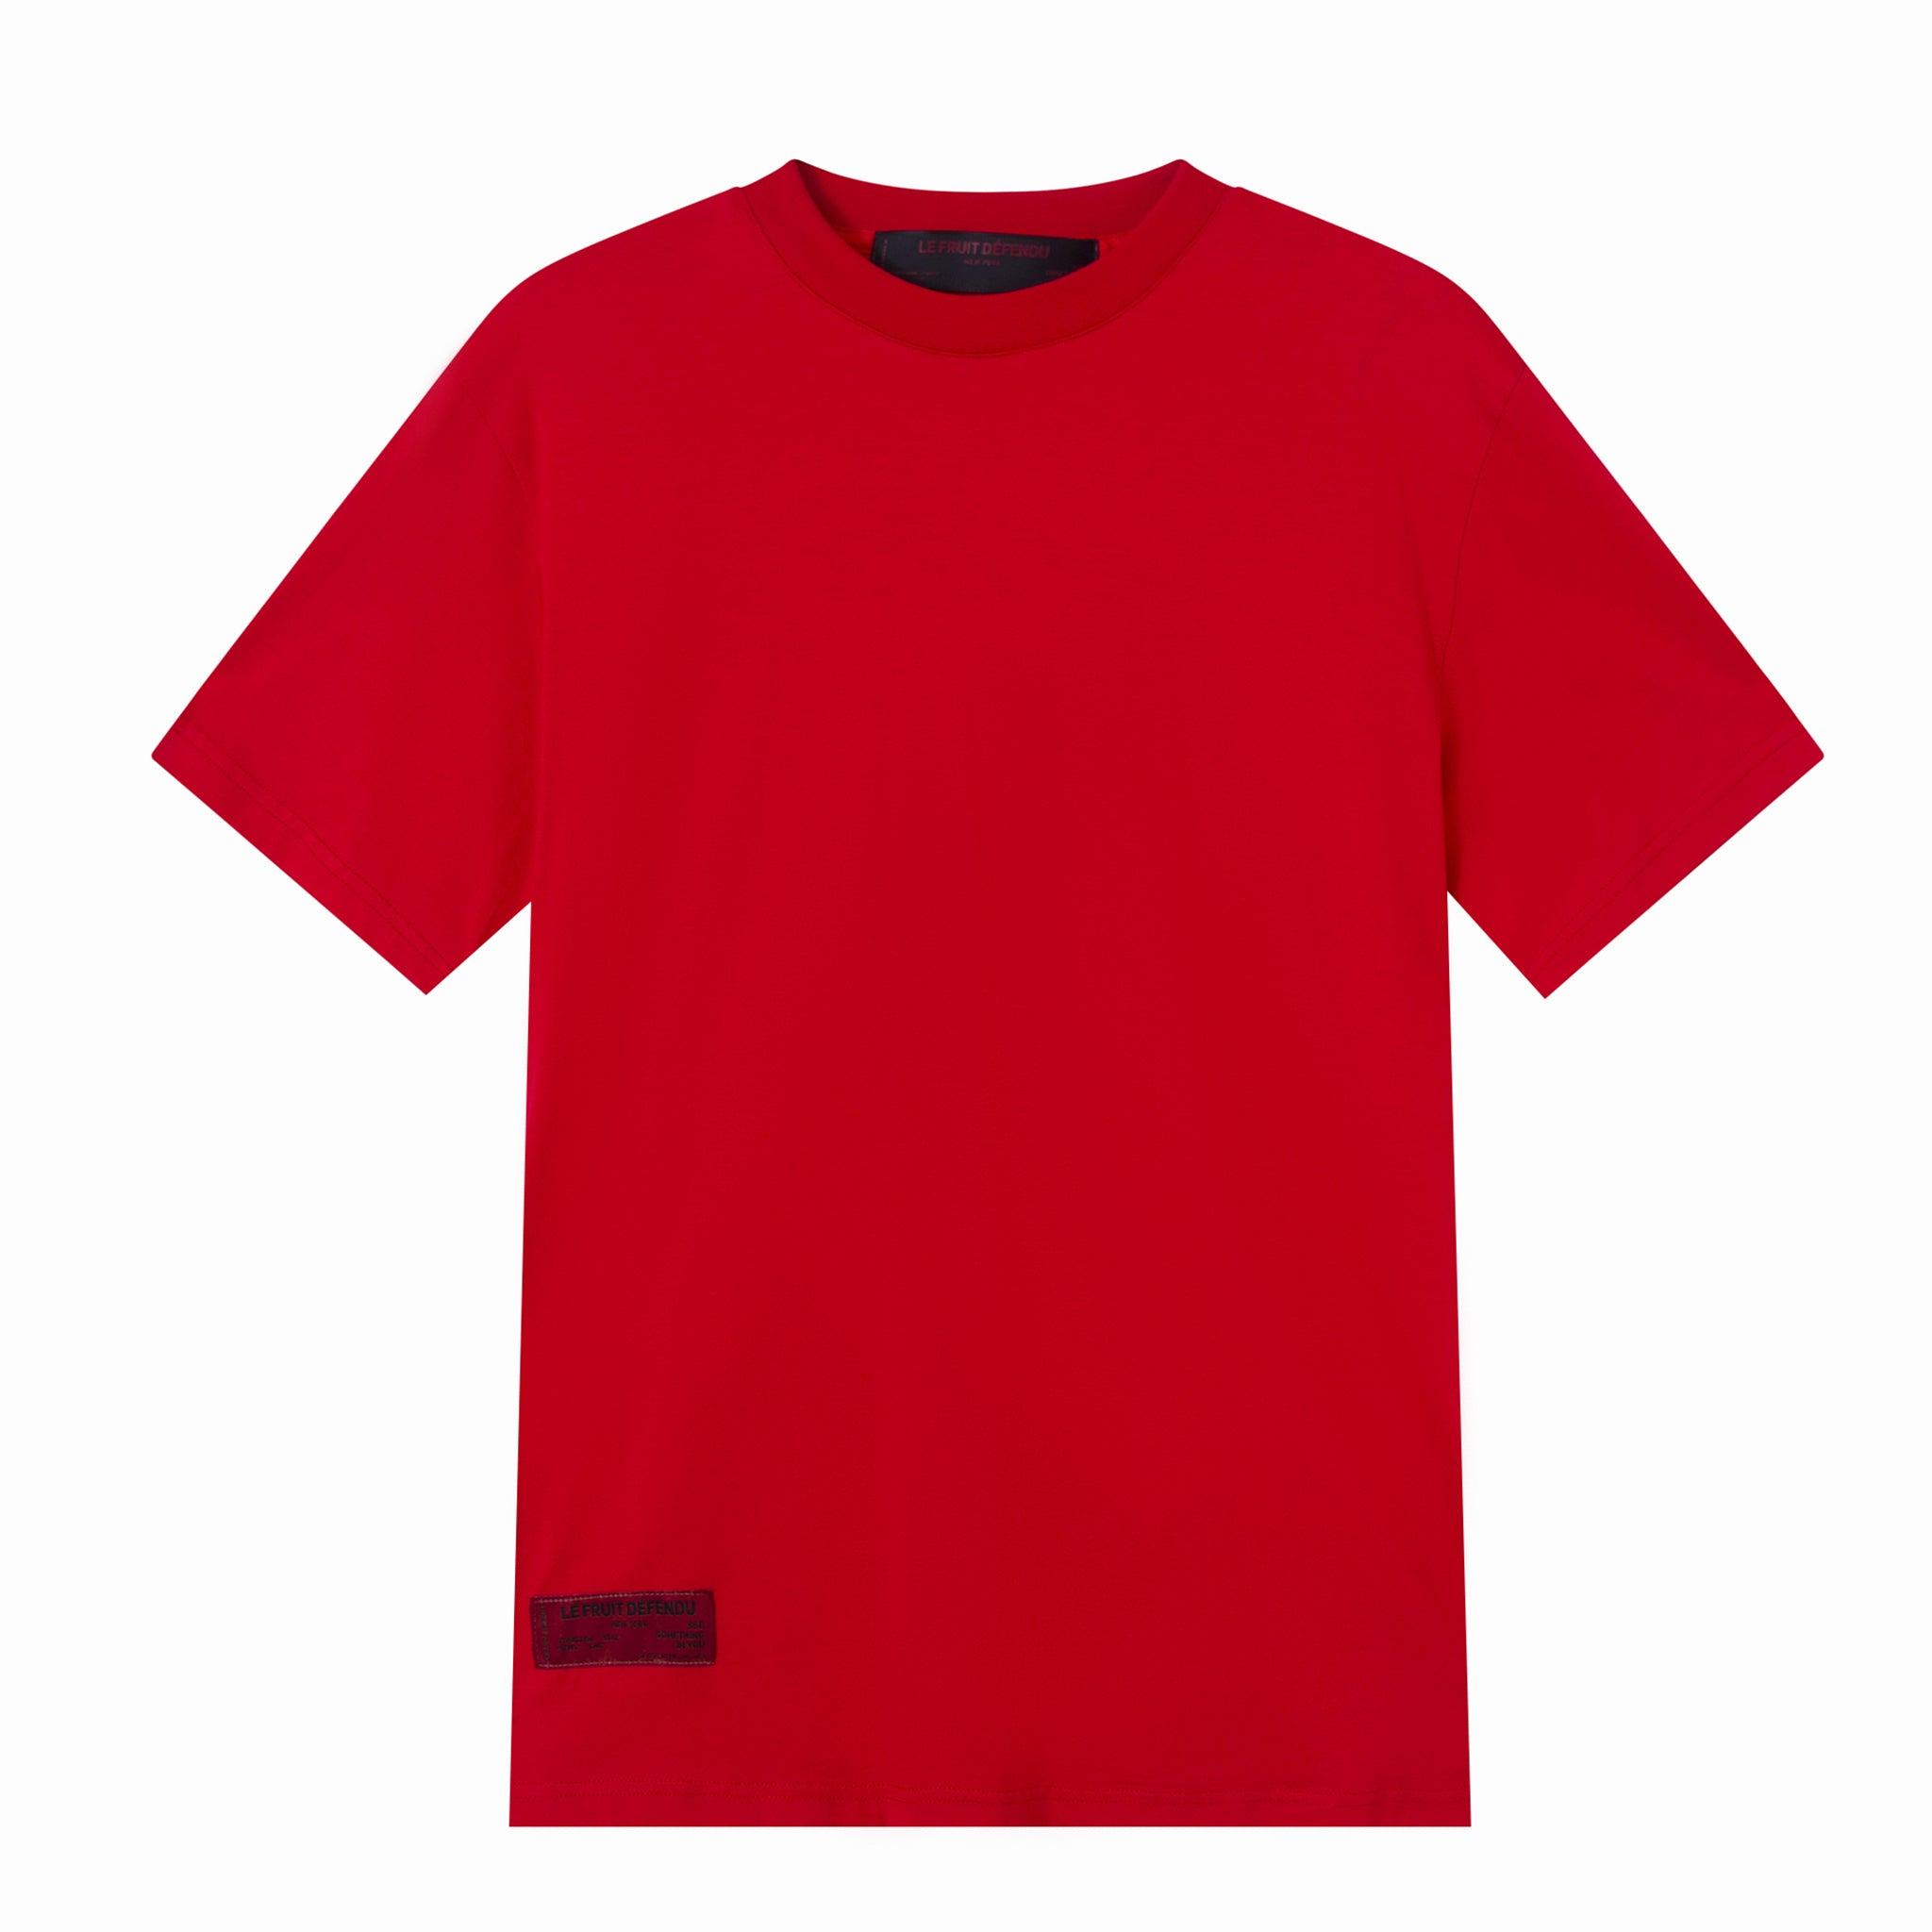 Greedy T-shirt - Red